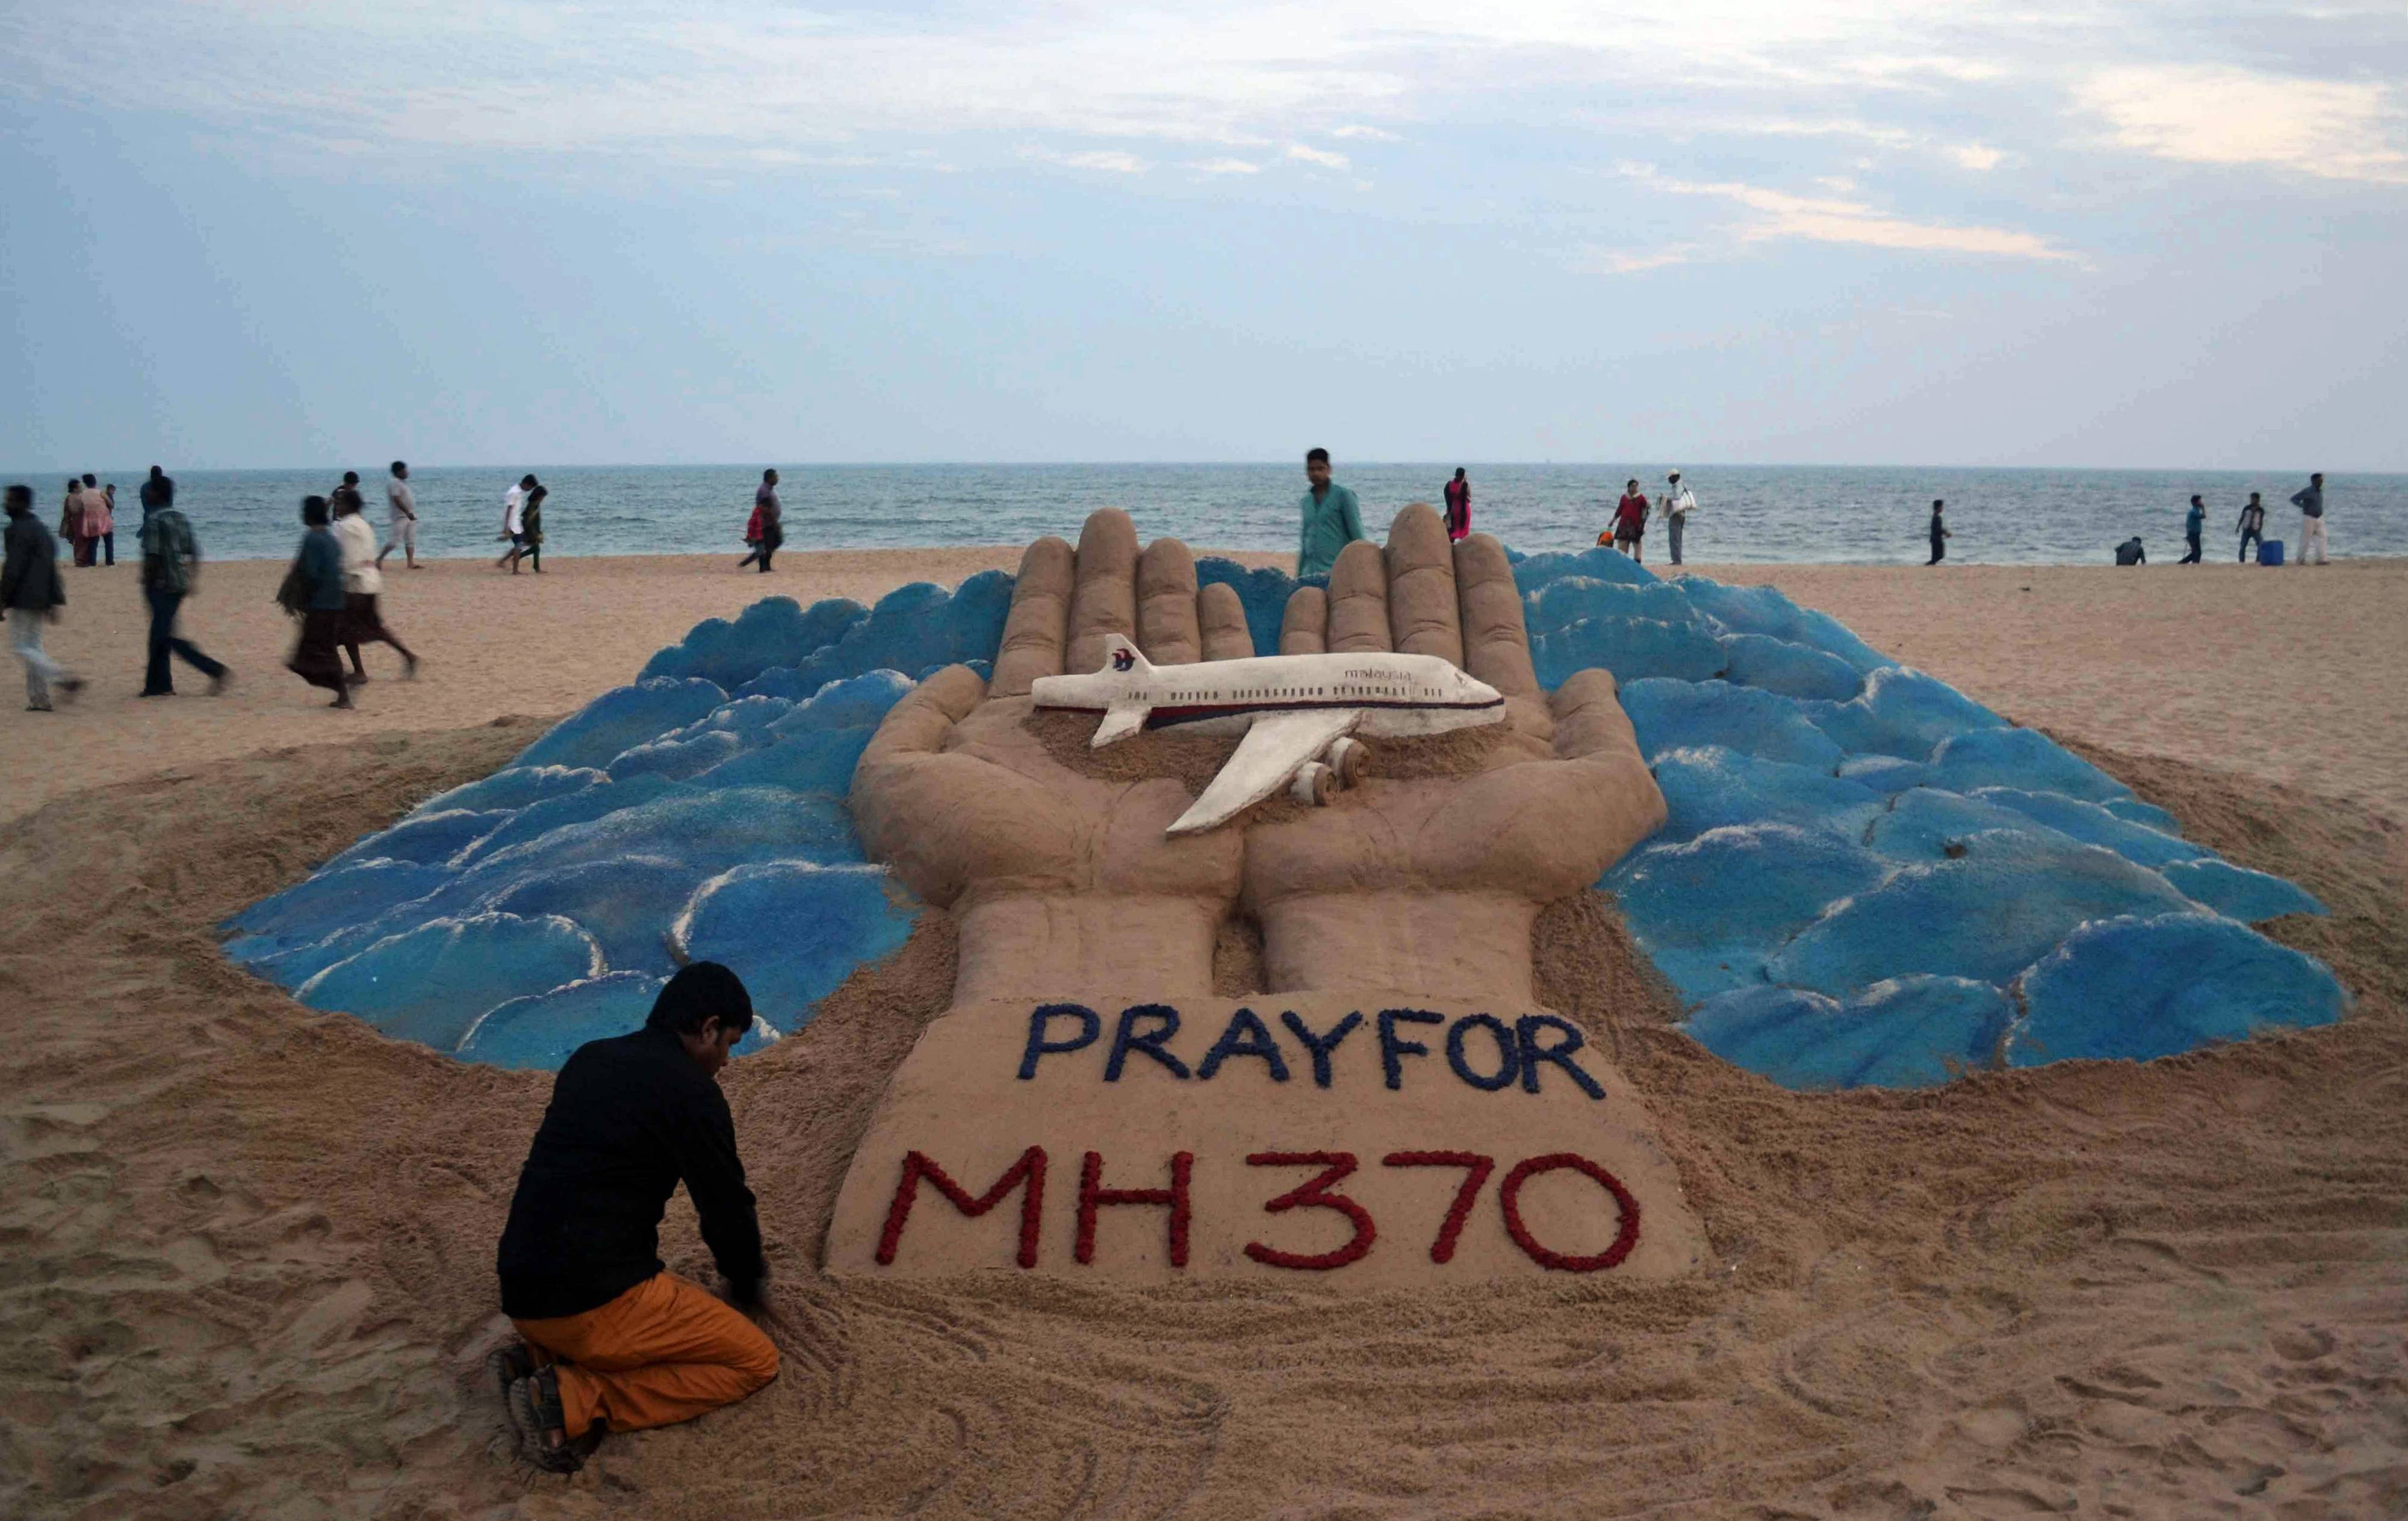 Sand artist Sudarshan Pattnaik creates a sculpture depicting the missing Malaysia Airlines aircraft on the beach in Puri, India, Wednesday, March 12, 2014. Malaysia has asked for India's assistance in searching for the missing Boeing 777 jetliner to widen the search to an area near the Andaman Sea, an Indian official said Wednesday.